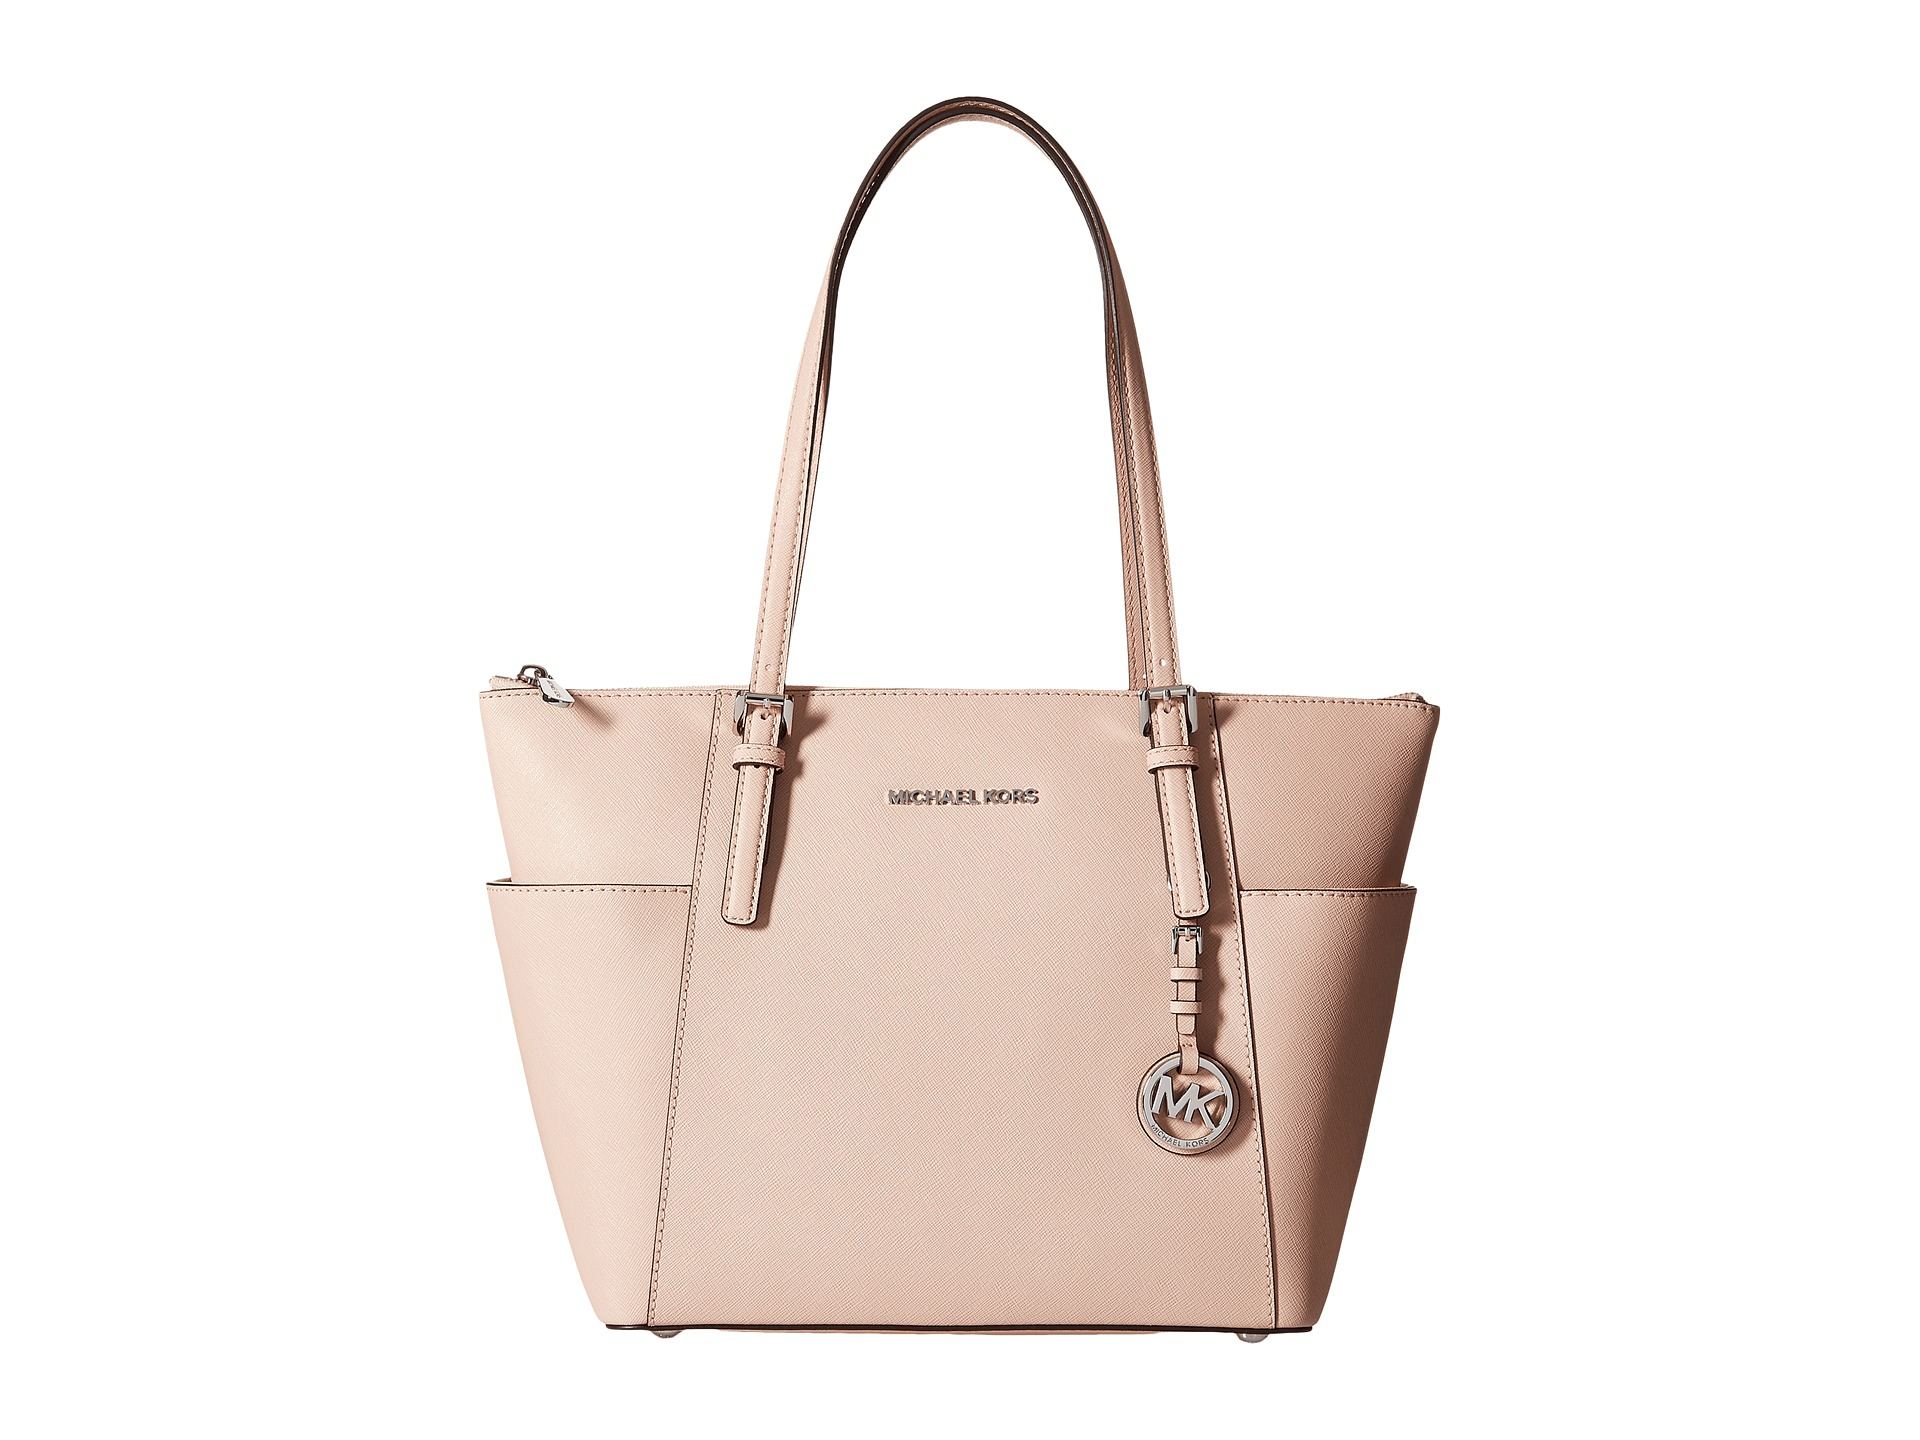 41f9d765f236 MICHAEL Michael Kors Jet Set Item East/west Top Zip Tote in Pink - Lyst